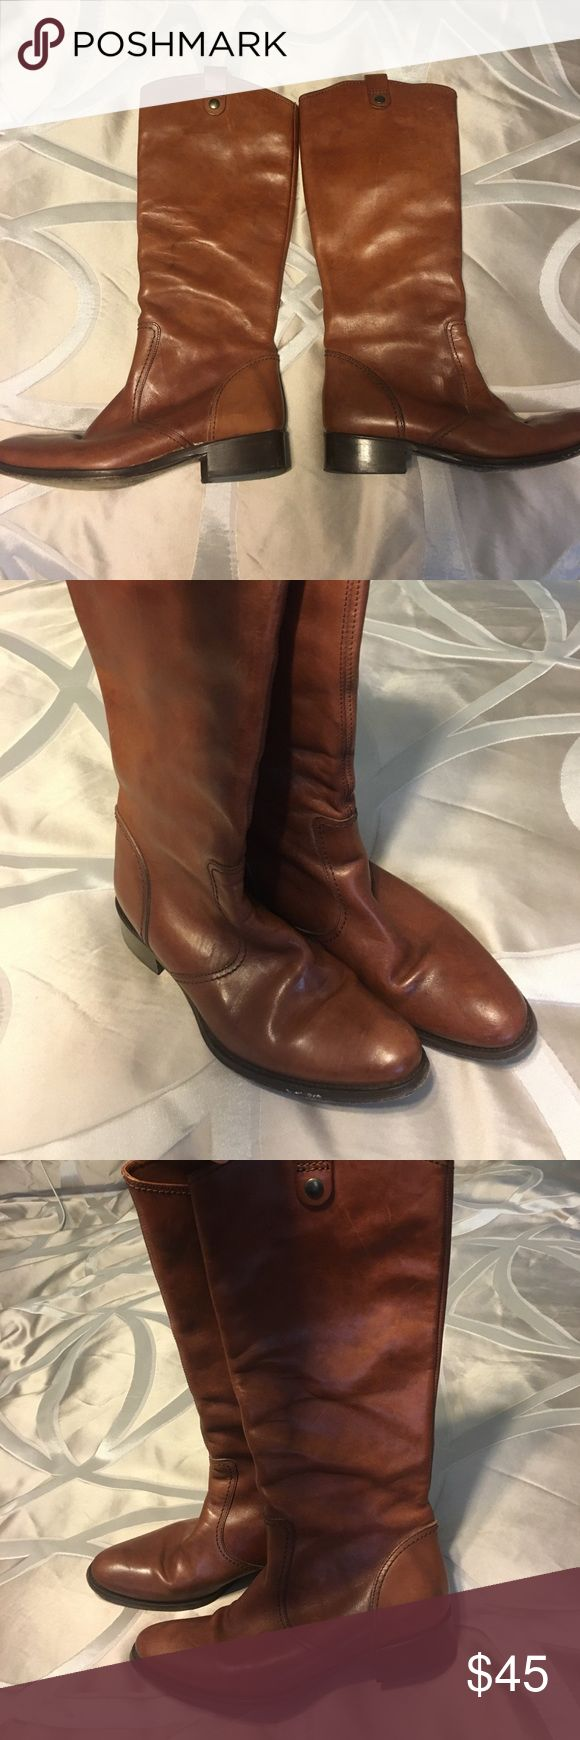 Kenneth Cole leather boots Gorgeous tan leather boots. Pull on style. Great quality riding boots. Kenneth Cole Shoes